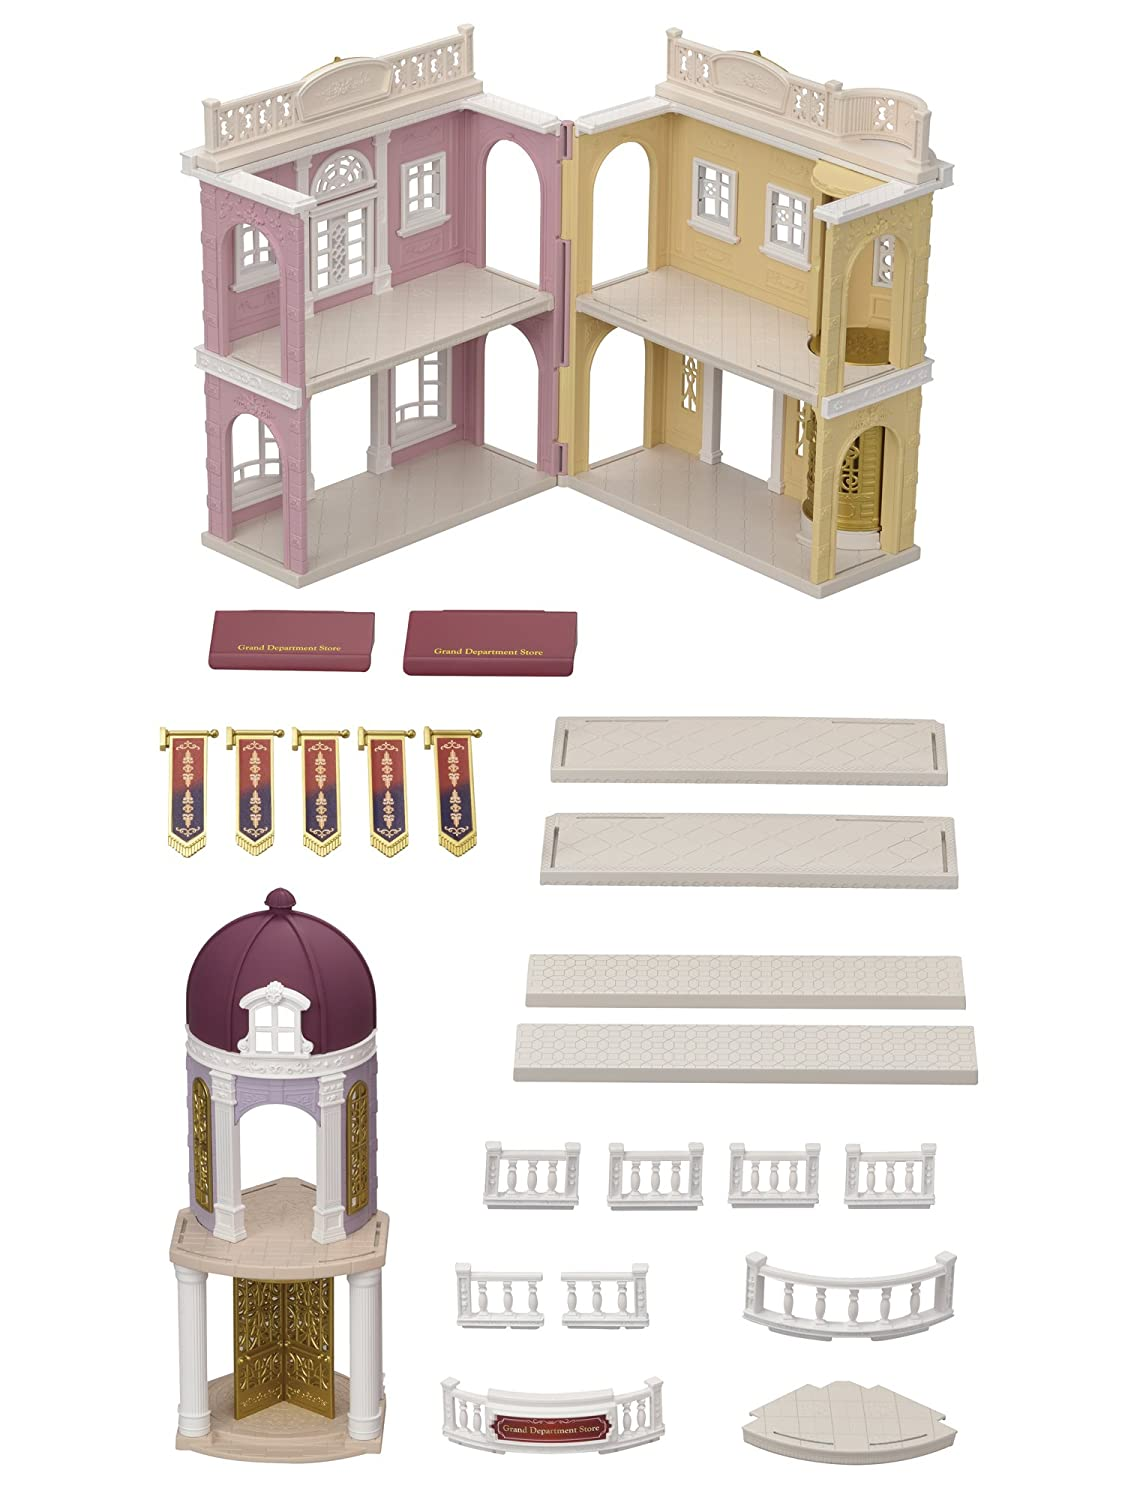 Sylvanian Families 6017 Grand Department Store Playset, New Town ...